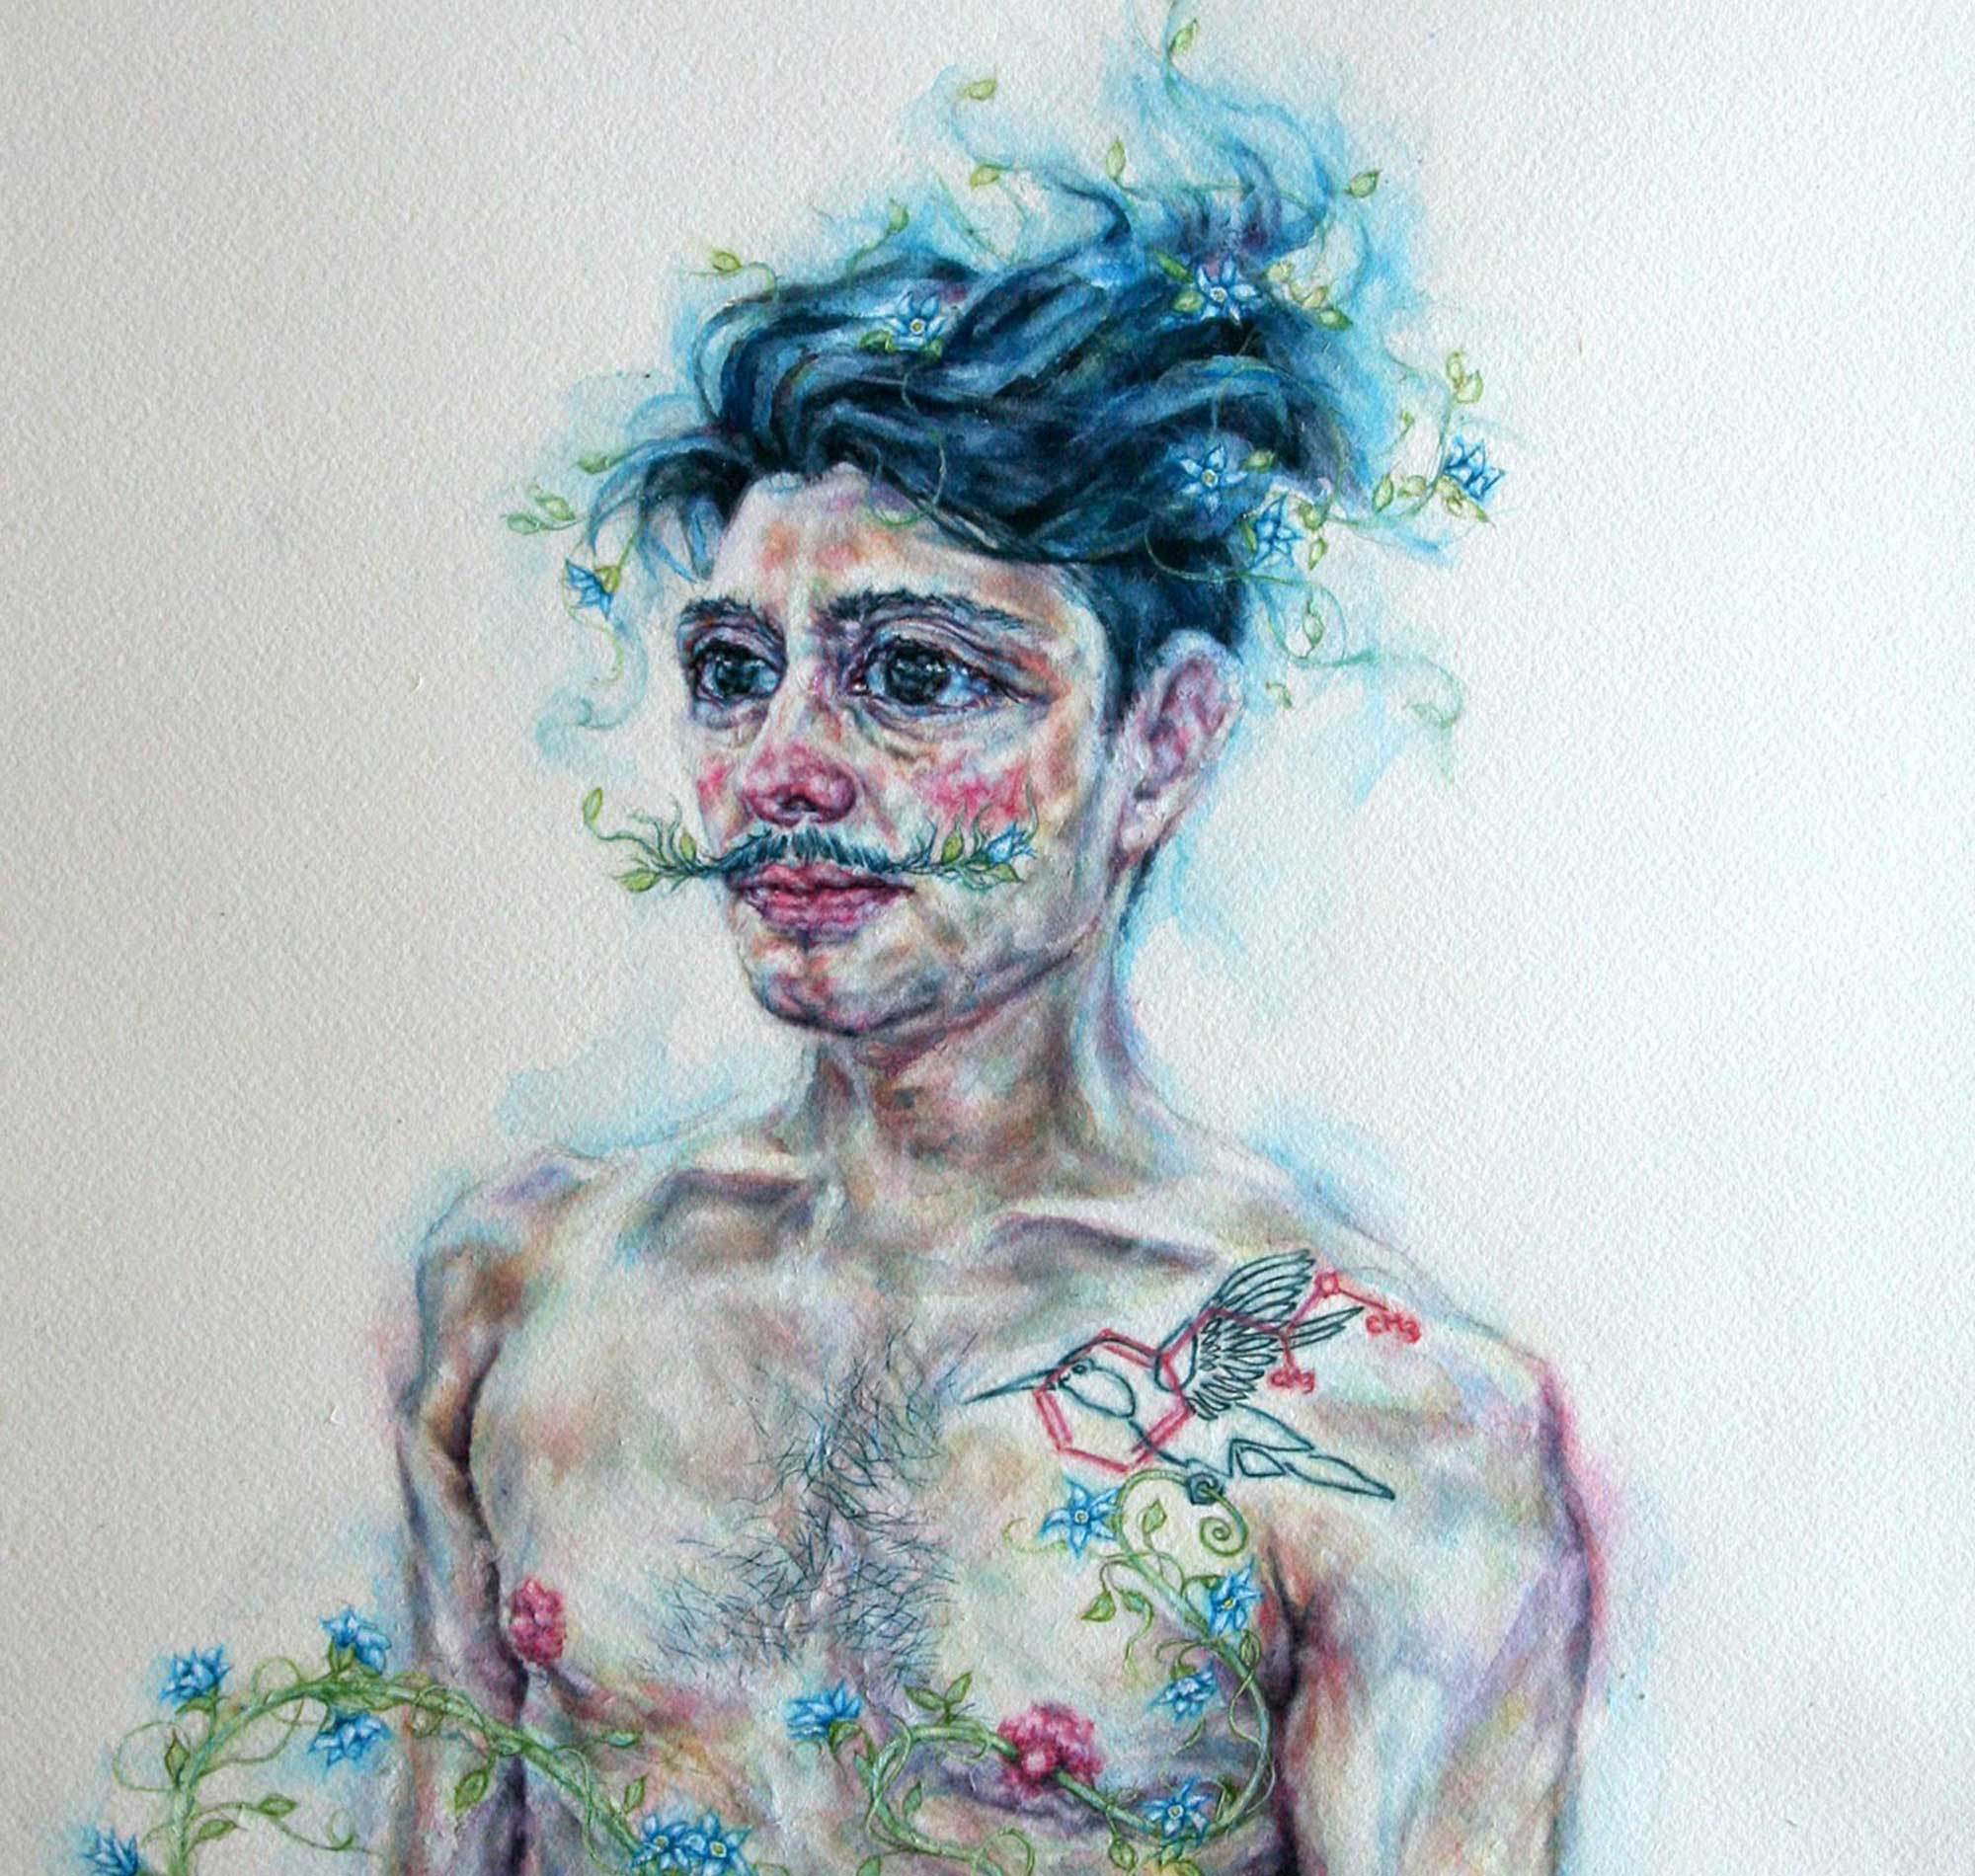 tammy salzl figurative watercolour illustration blue and black haired man